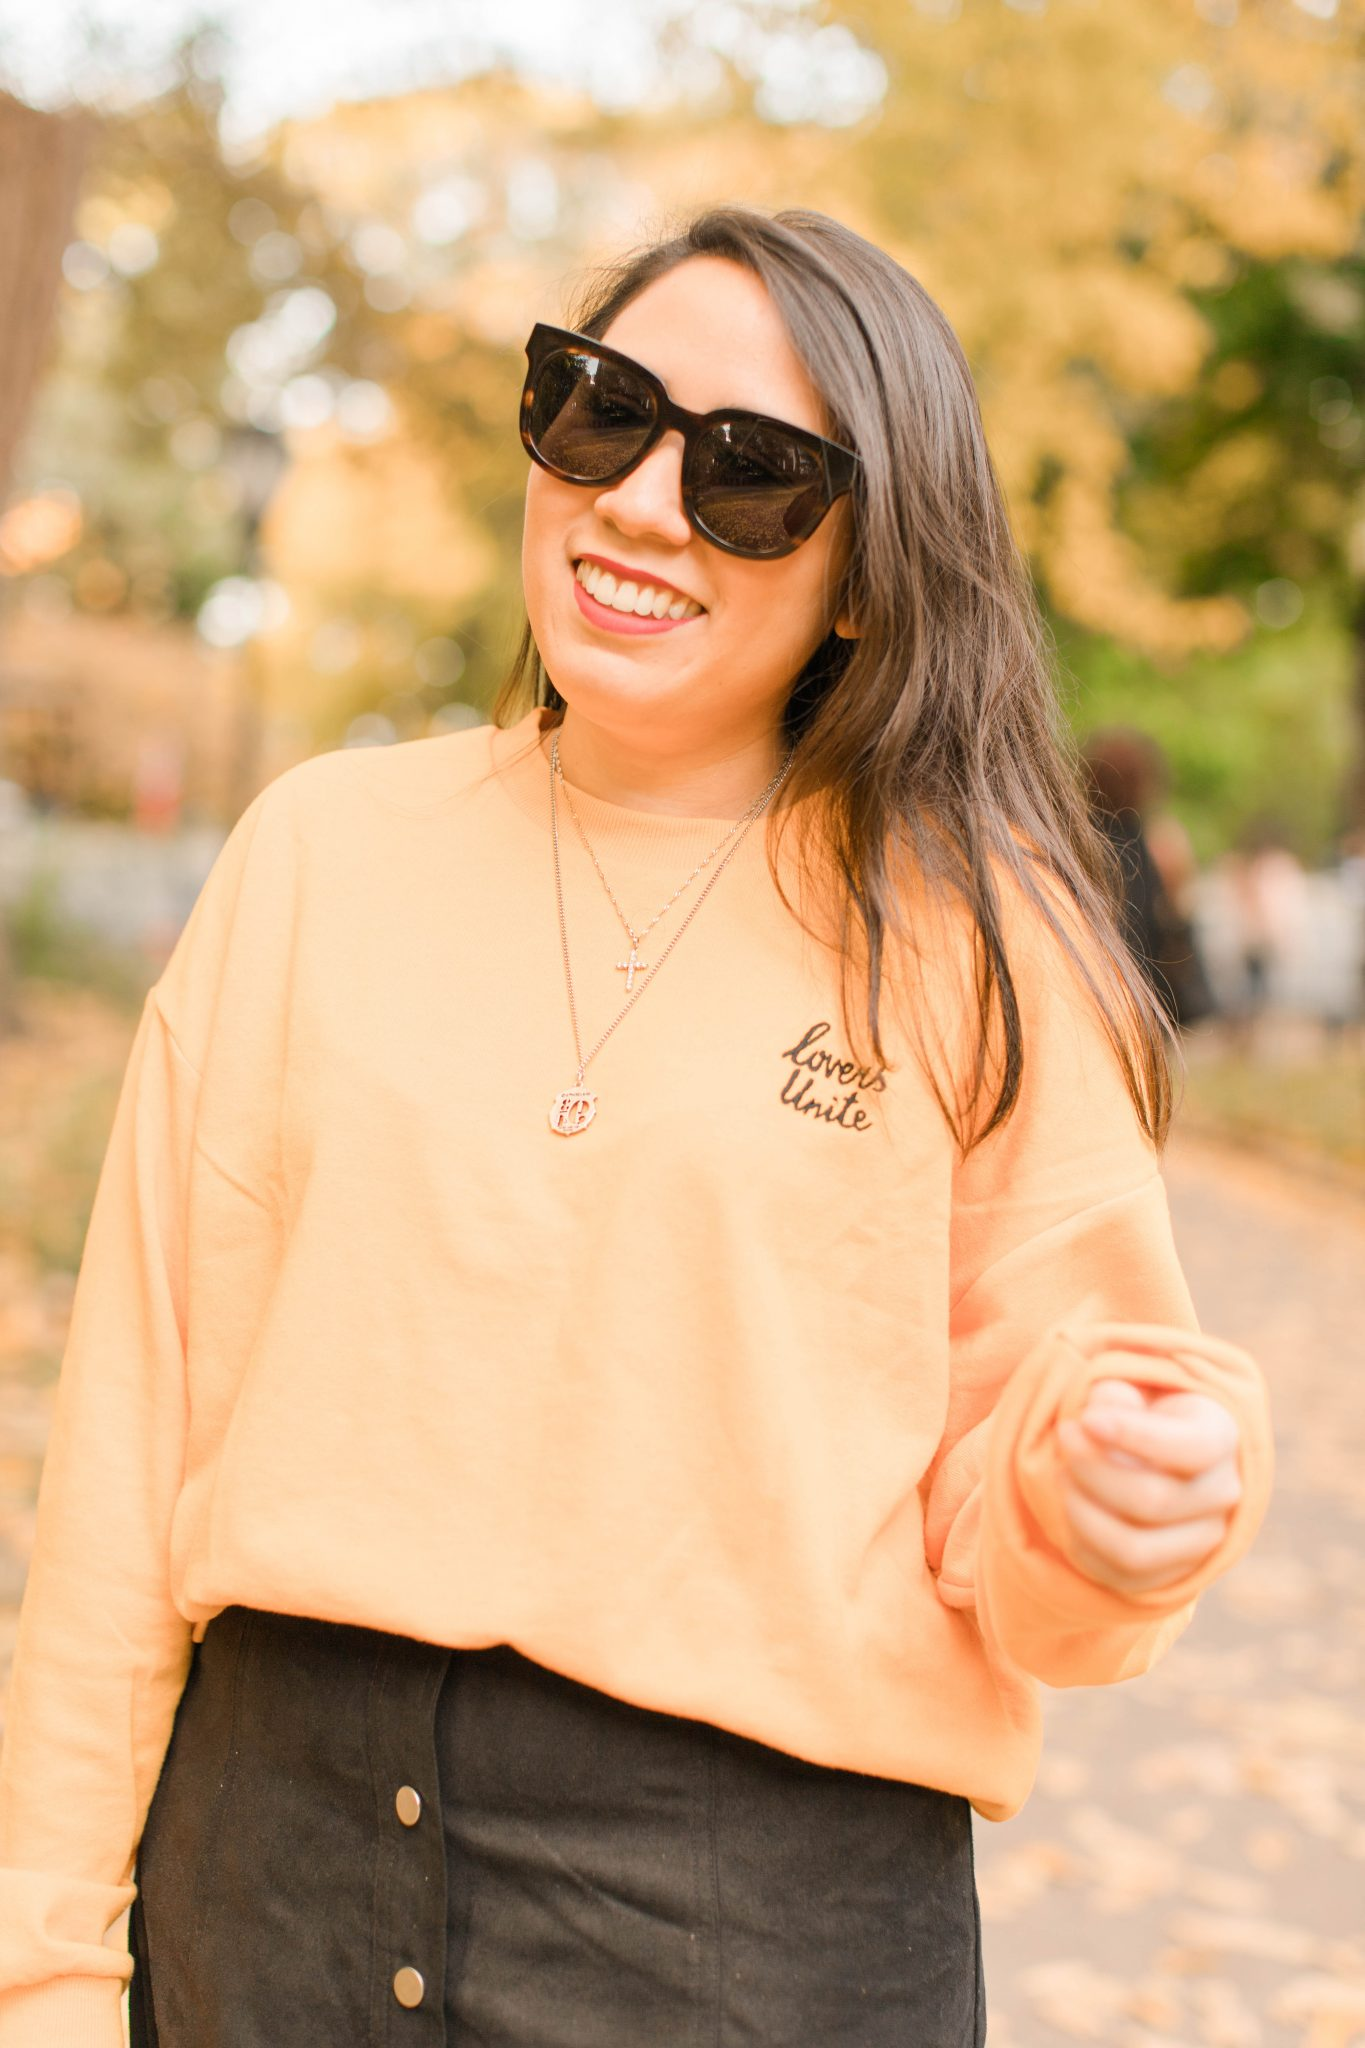 Alex & Ani | Steve Madden | H&M | My 2019 New Years Personal Goals featured by top NYC life and style blogger Live Laugh Linda